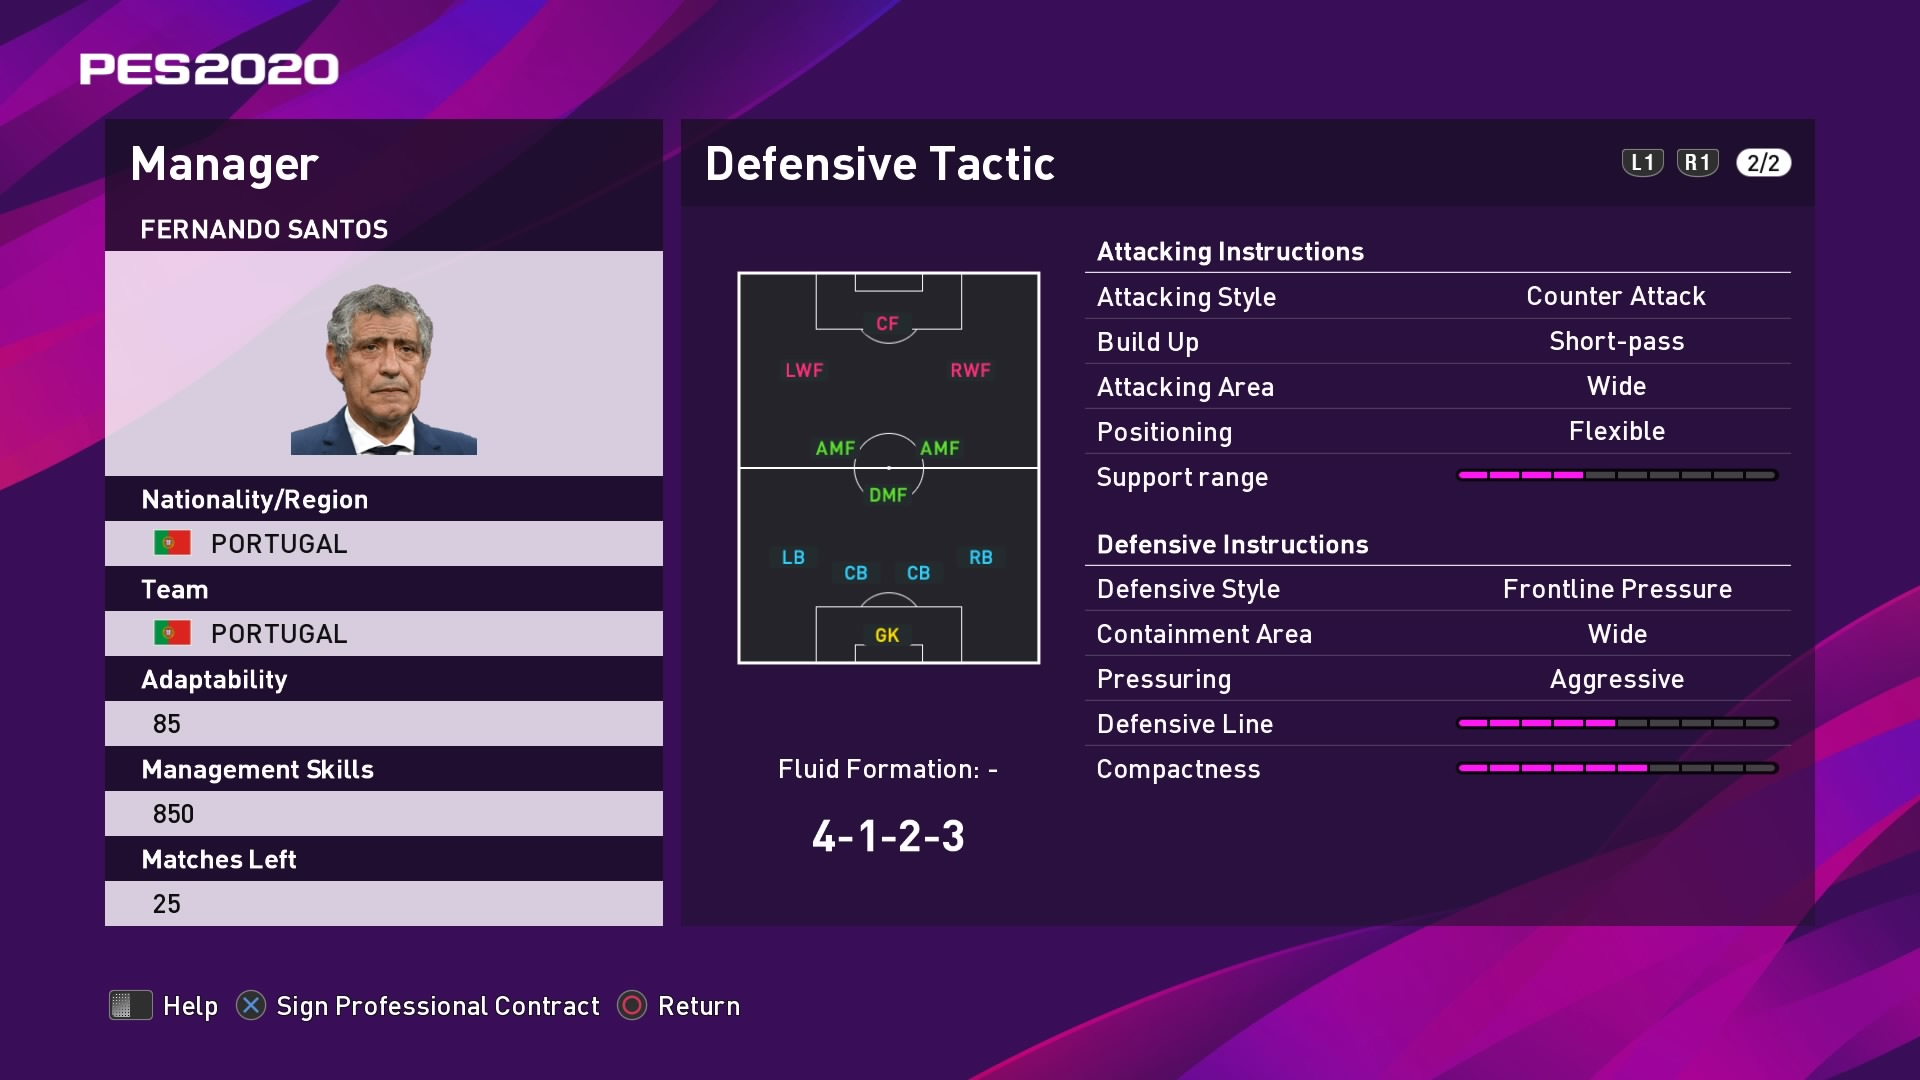 Fernando Santos (3) Defensive Tactic in PES 2020 myClub